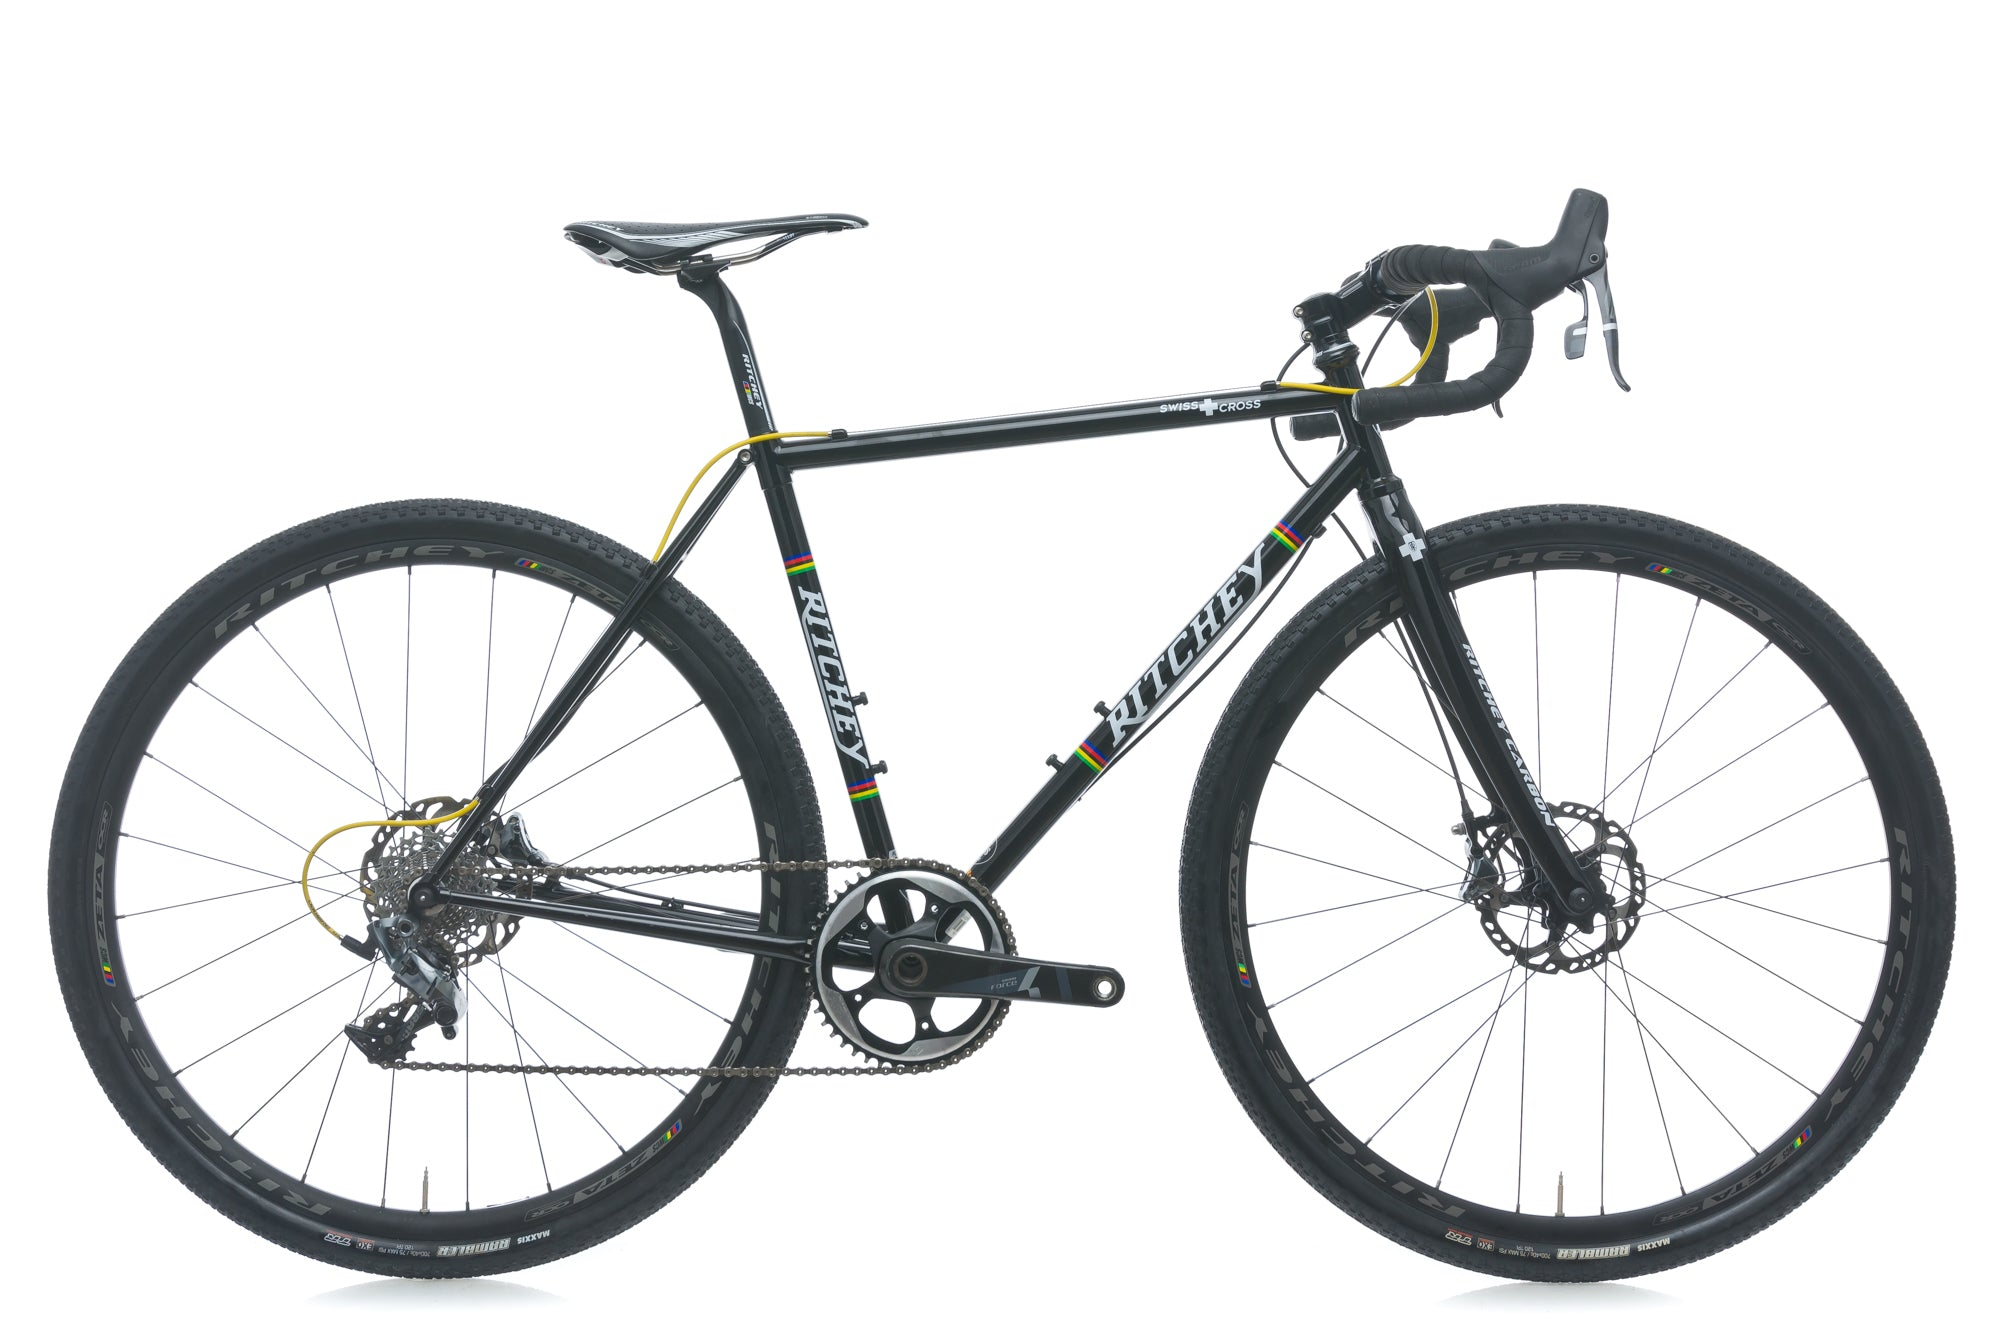 Ritchey Swiss Cross Disc 53cm Bike - 2016 drive side